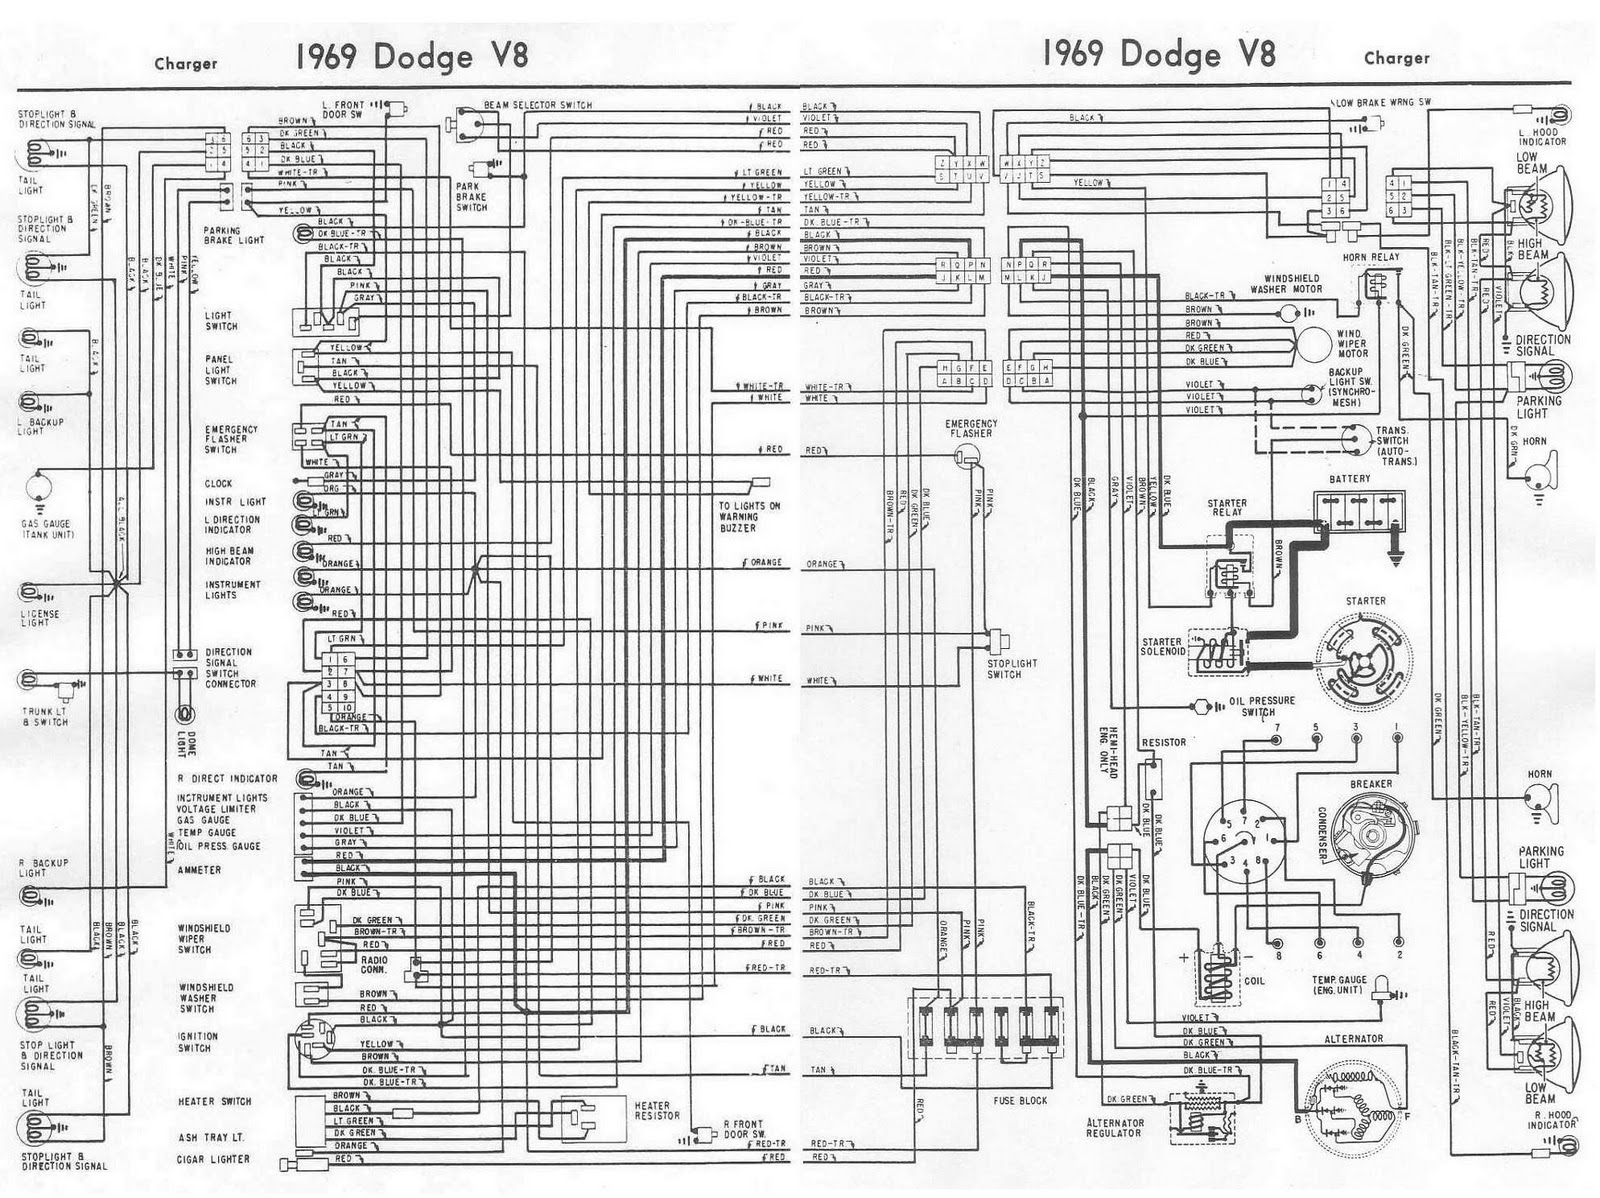 dodge charger 1969 v8 complete electrical wiring diagram. Black Bedroom Furniture Sets. Home Design Ideas